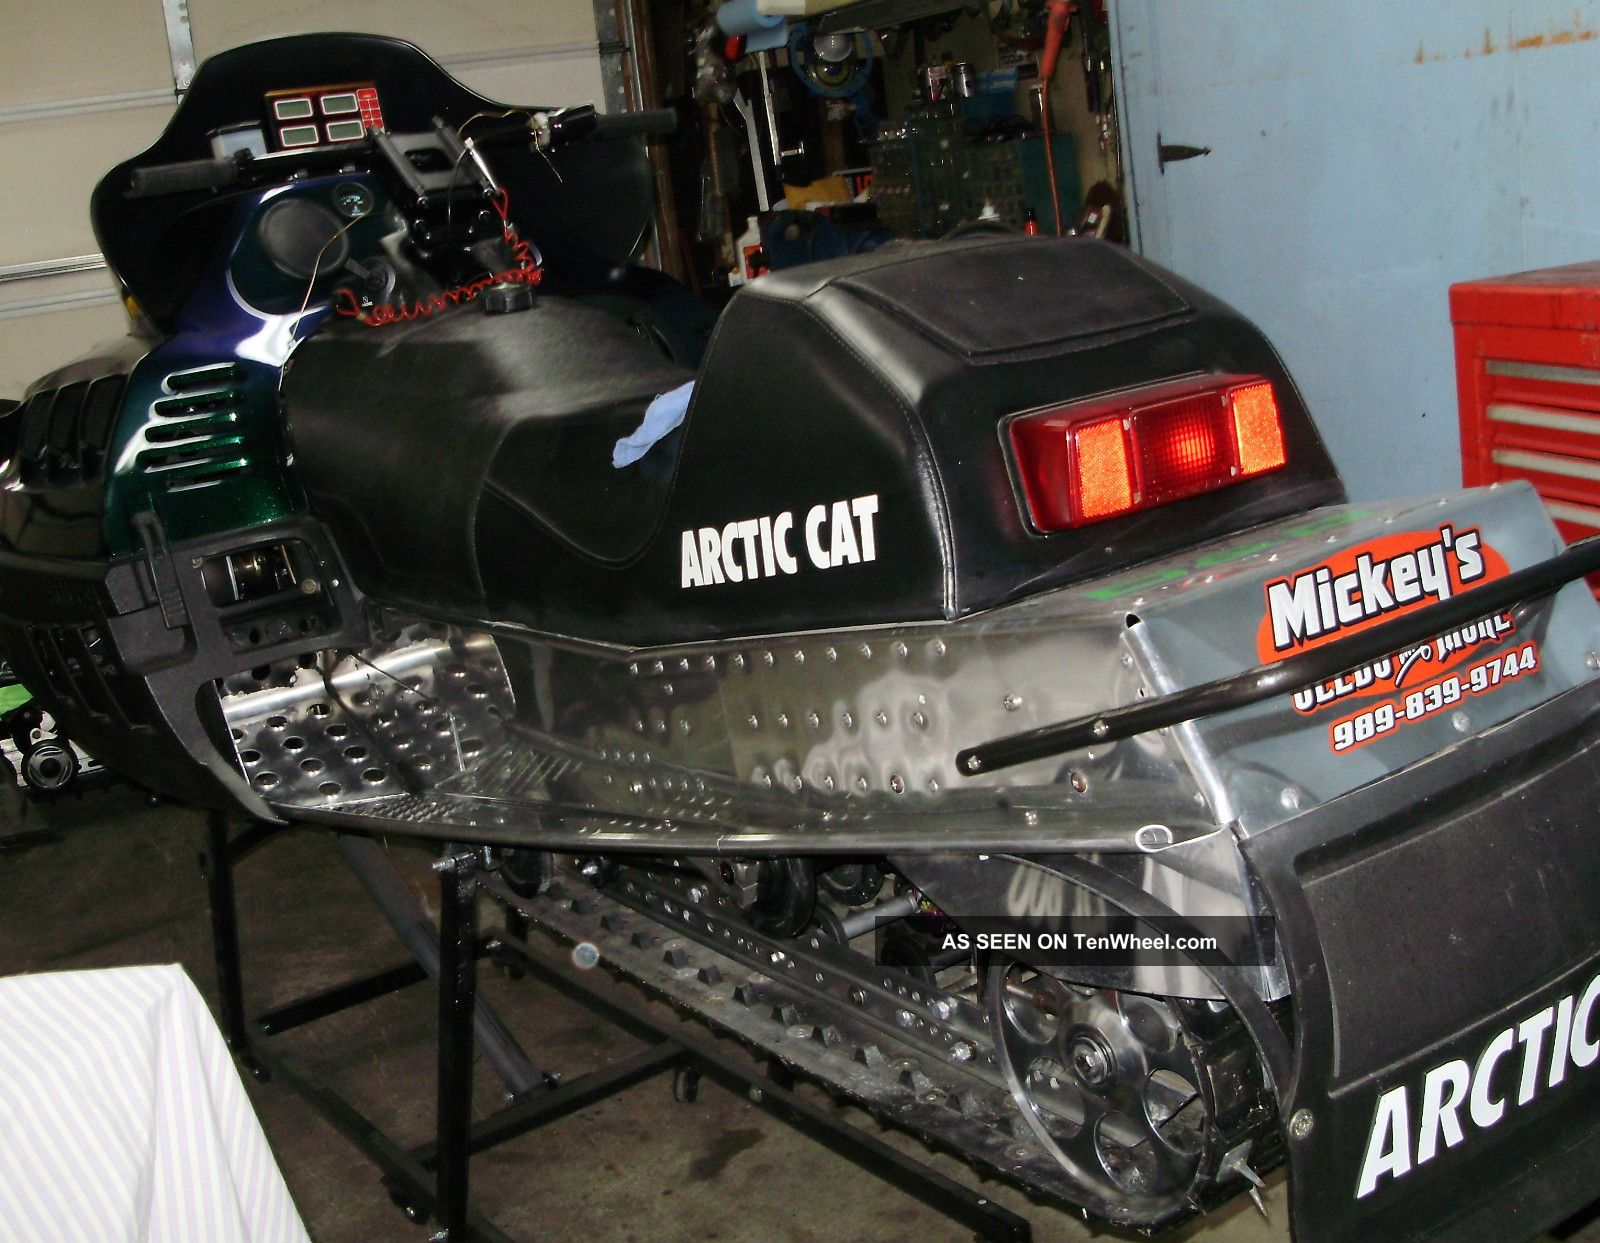 Arctic Cat Zrt Lgw additionally Hqdefault together with Zdmivrb also Arctic Cat Zrt Lgw furthermore Hqdefault. on kawasaki mojave 250 specs